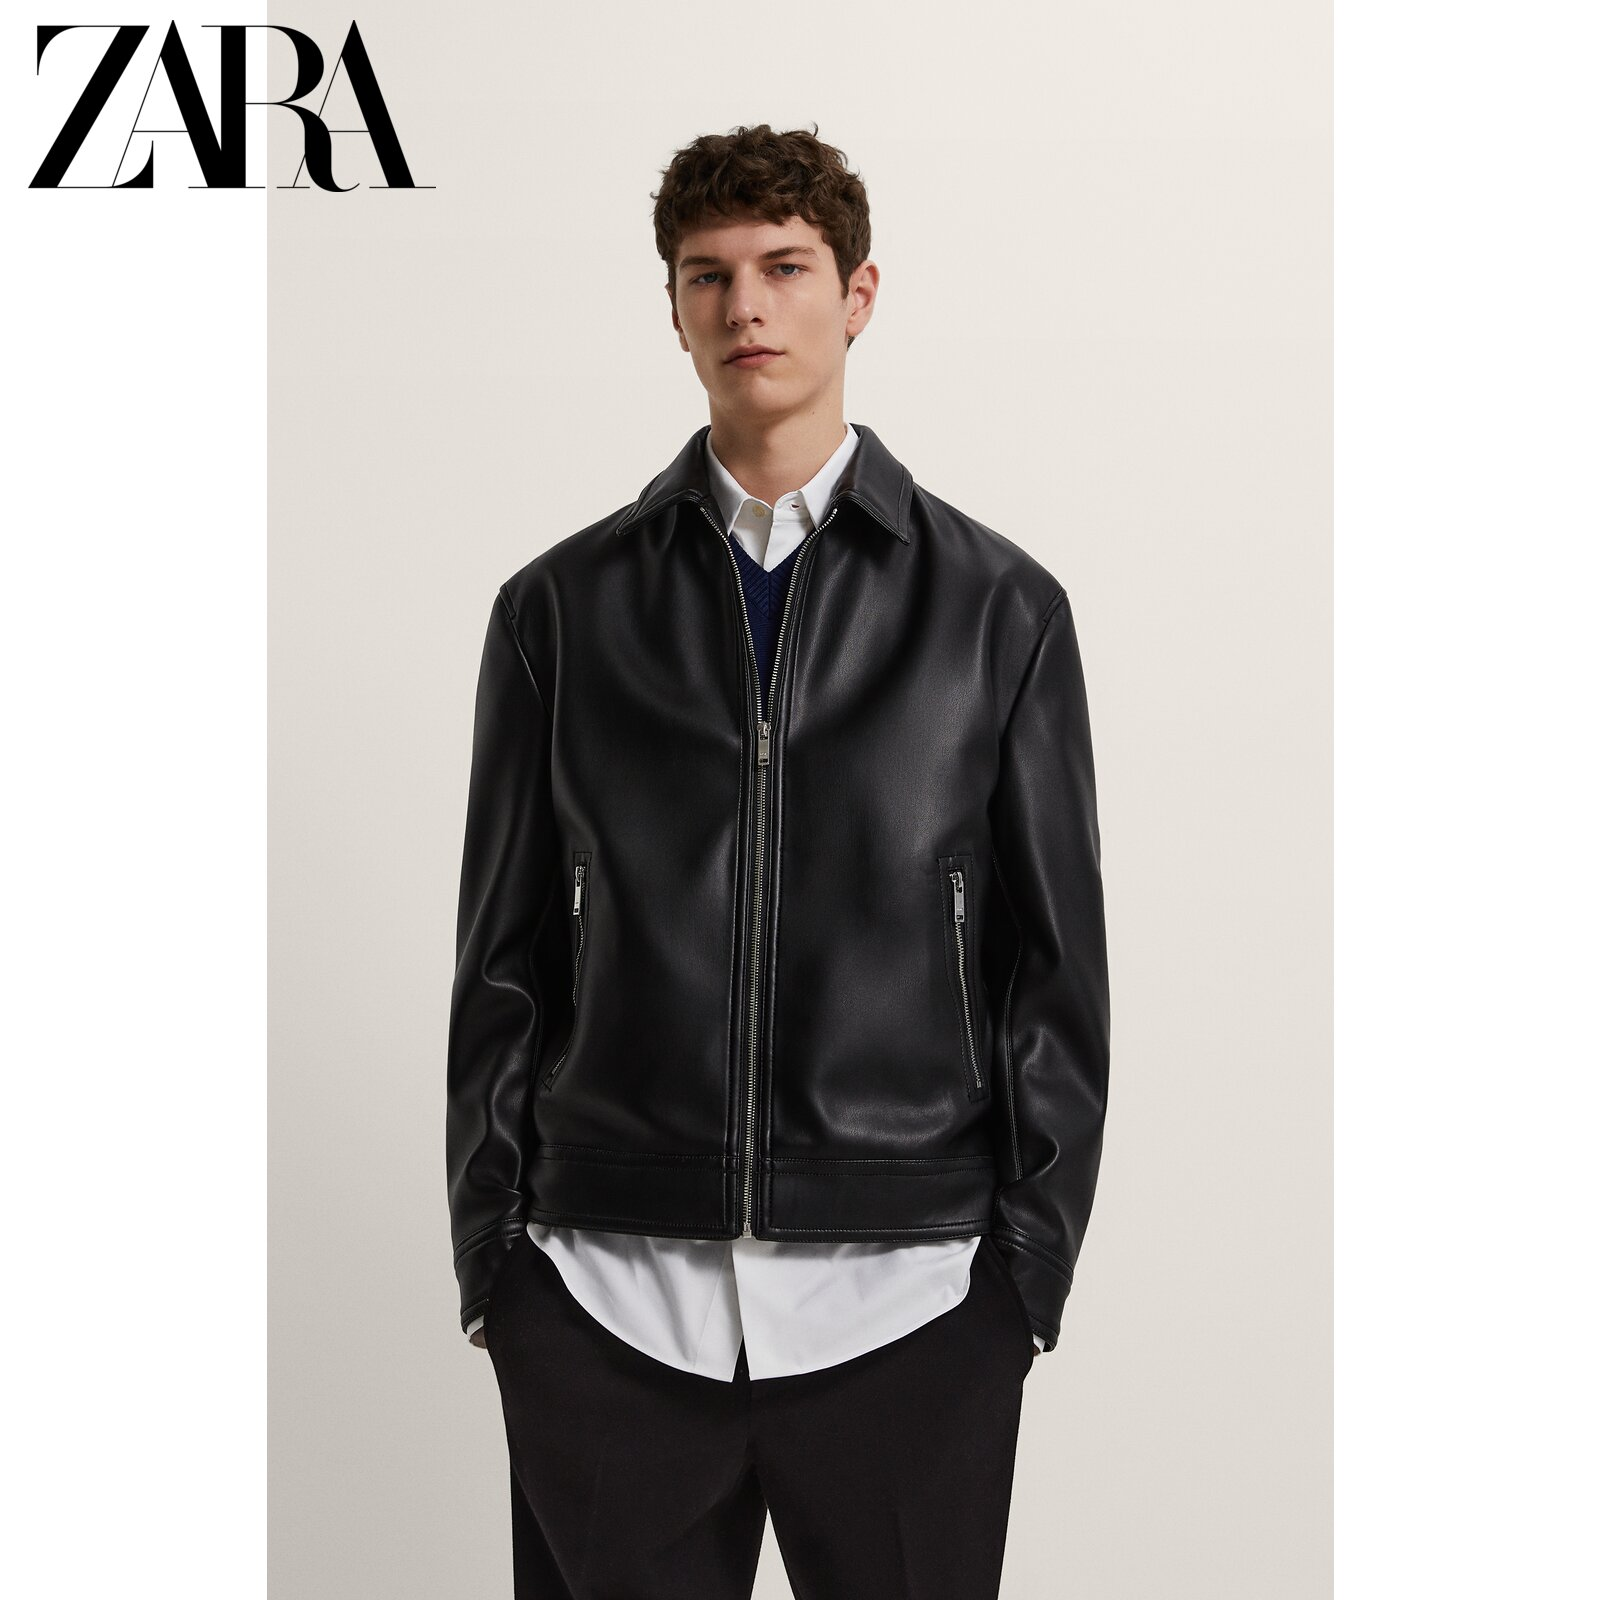 ZARA Summer New Men's Imitation Leather Jacket Jacket 08281630800